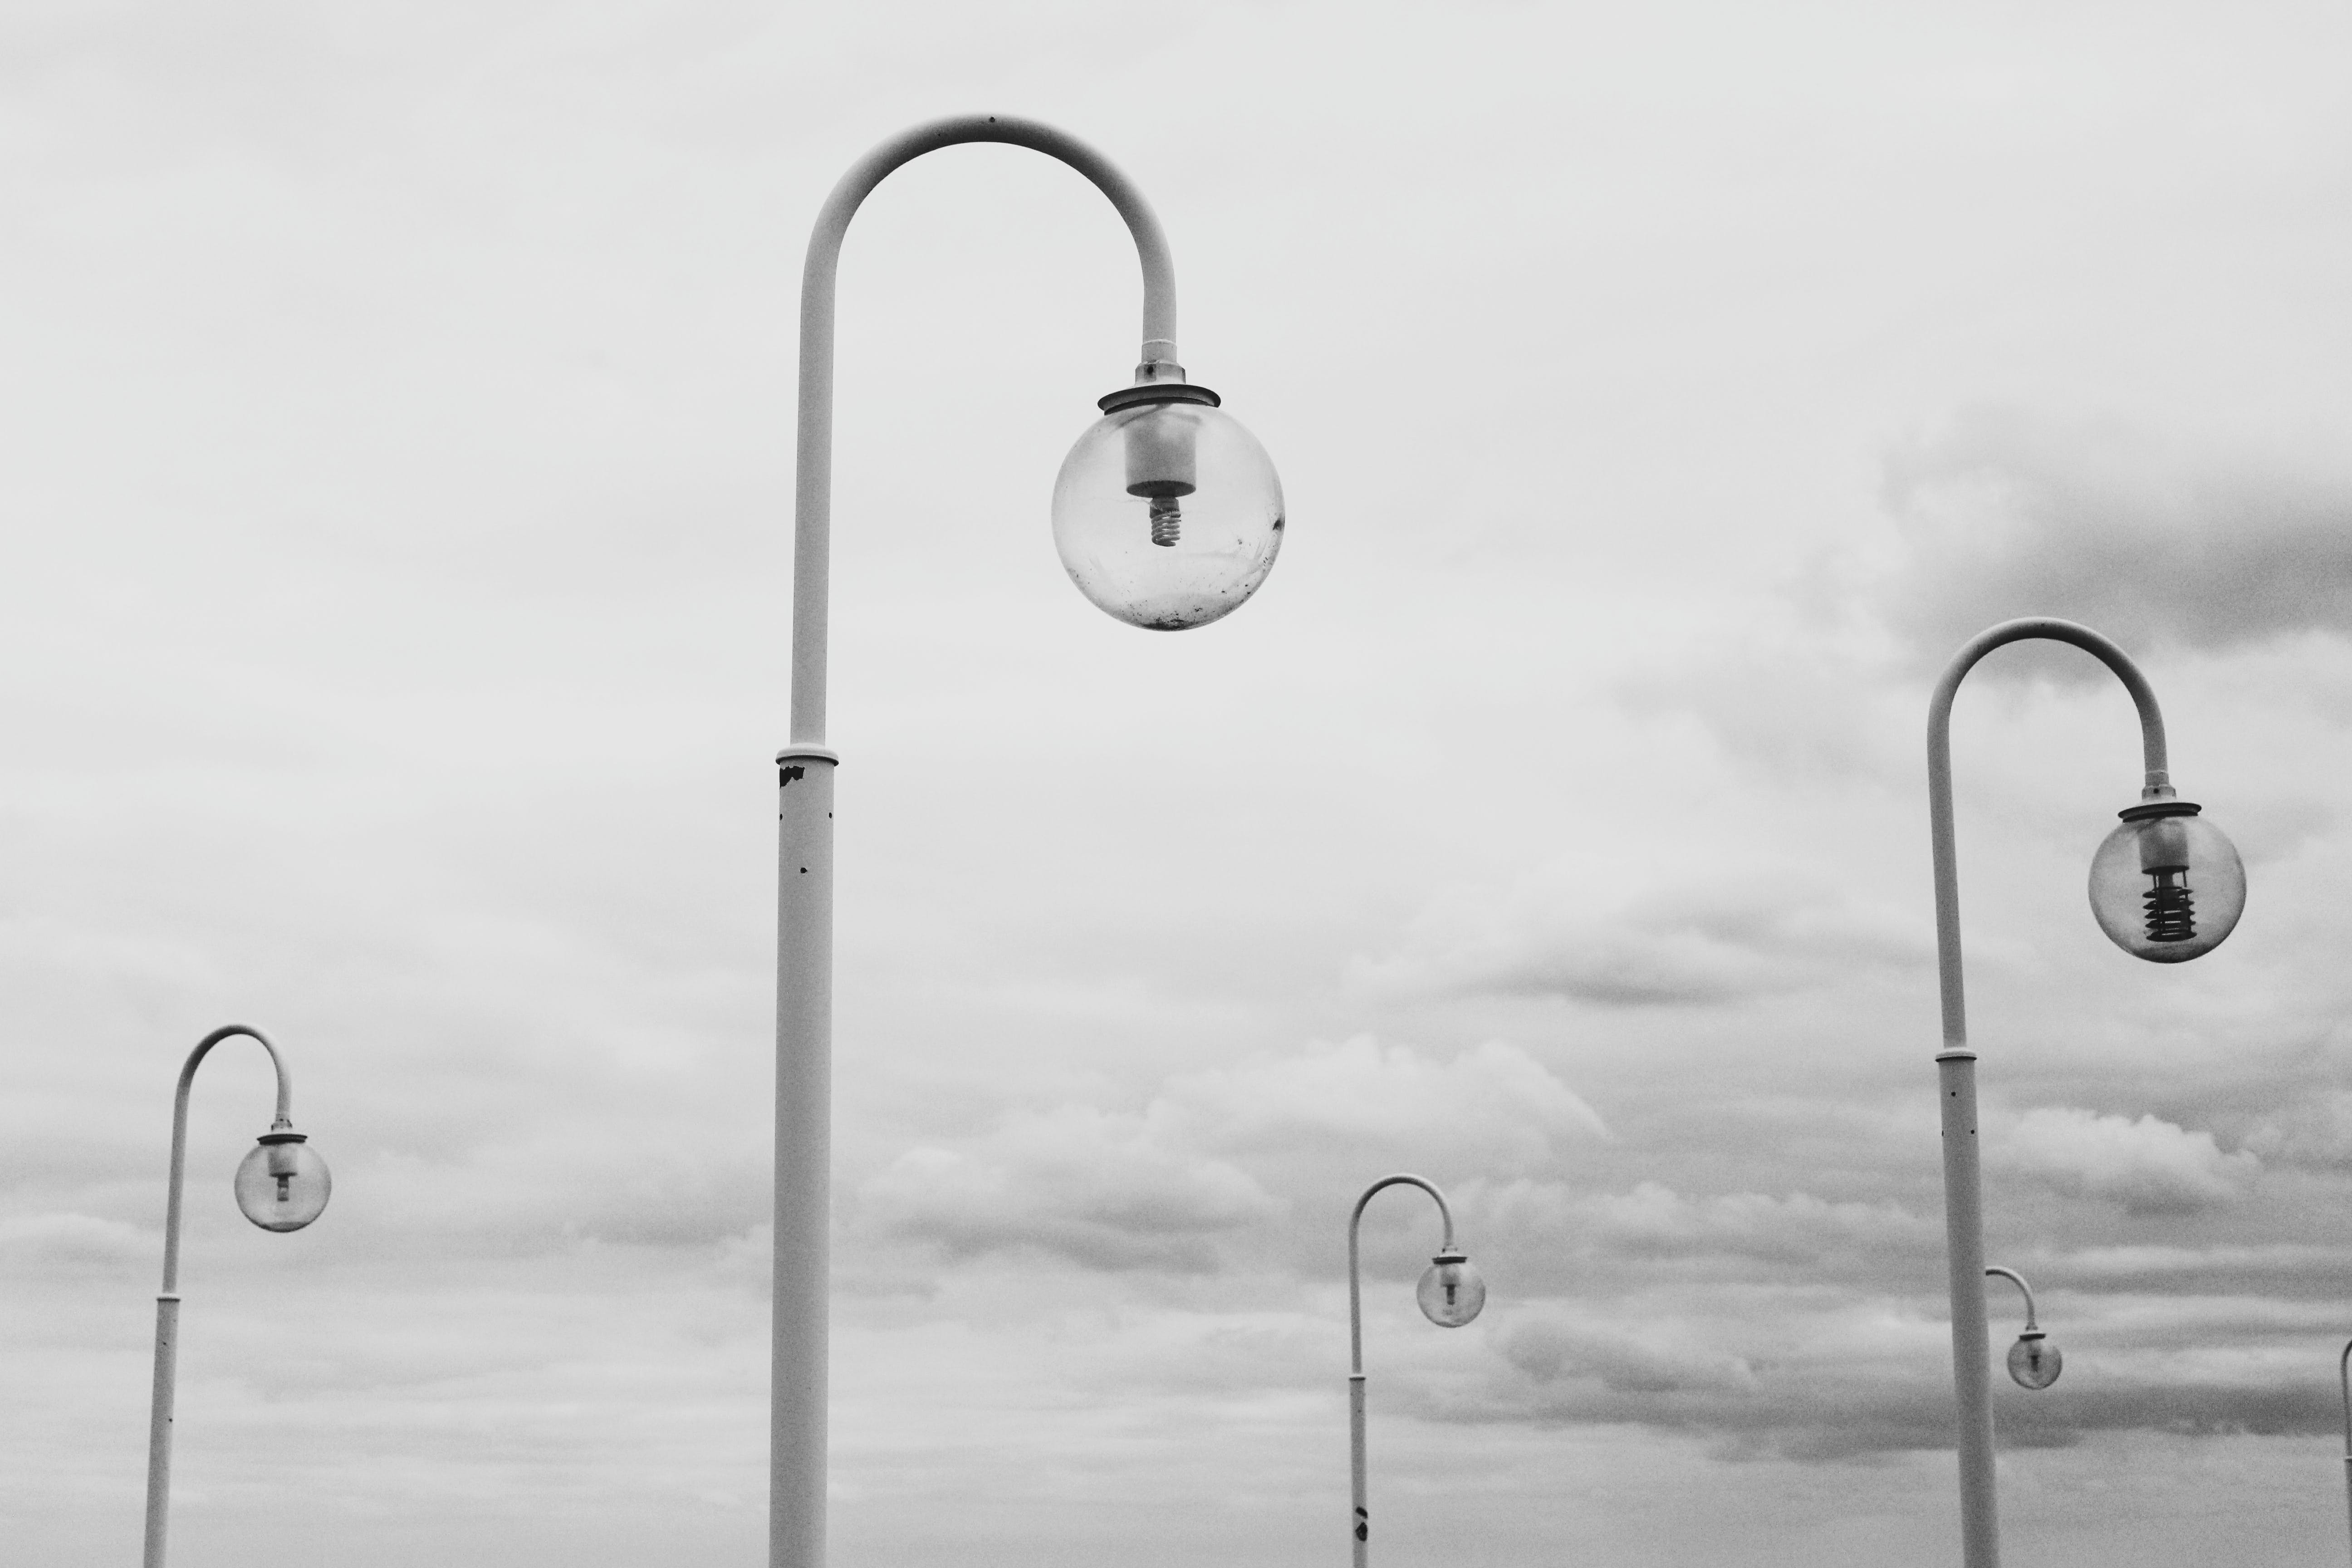 Grey Scale Photography of Lamps